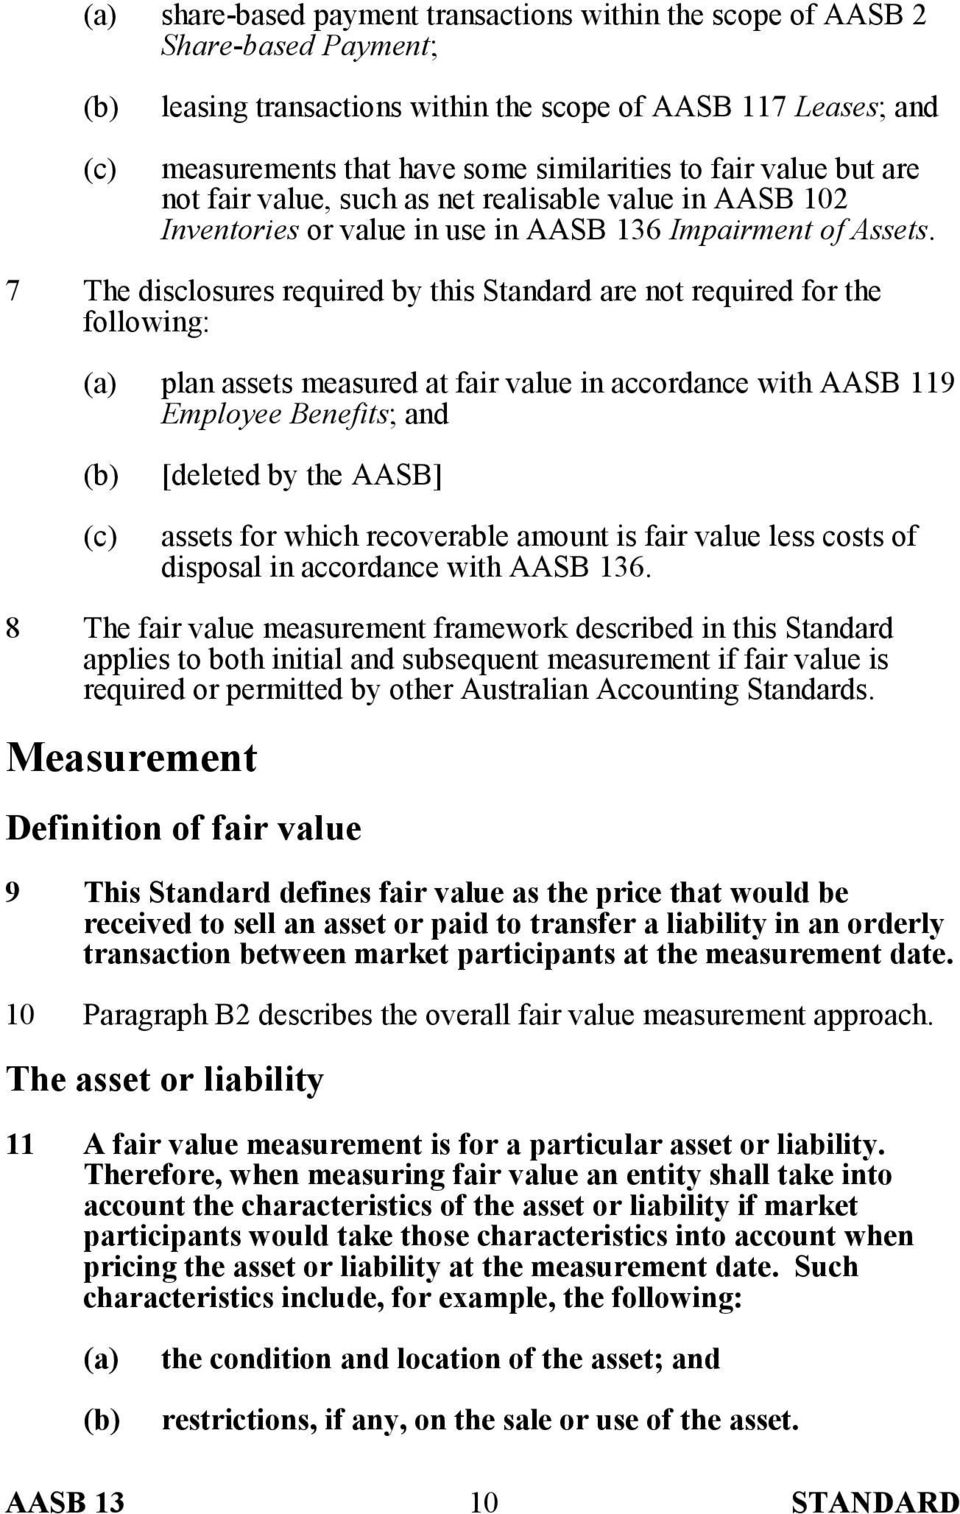 7 The disclosures required by this Standard are not required for the following: plan assets measured at fair value in accordance with AASB 119 Employee Benefits; and (c) [deleted by the AASB] assets